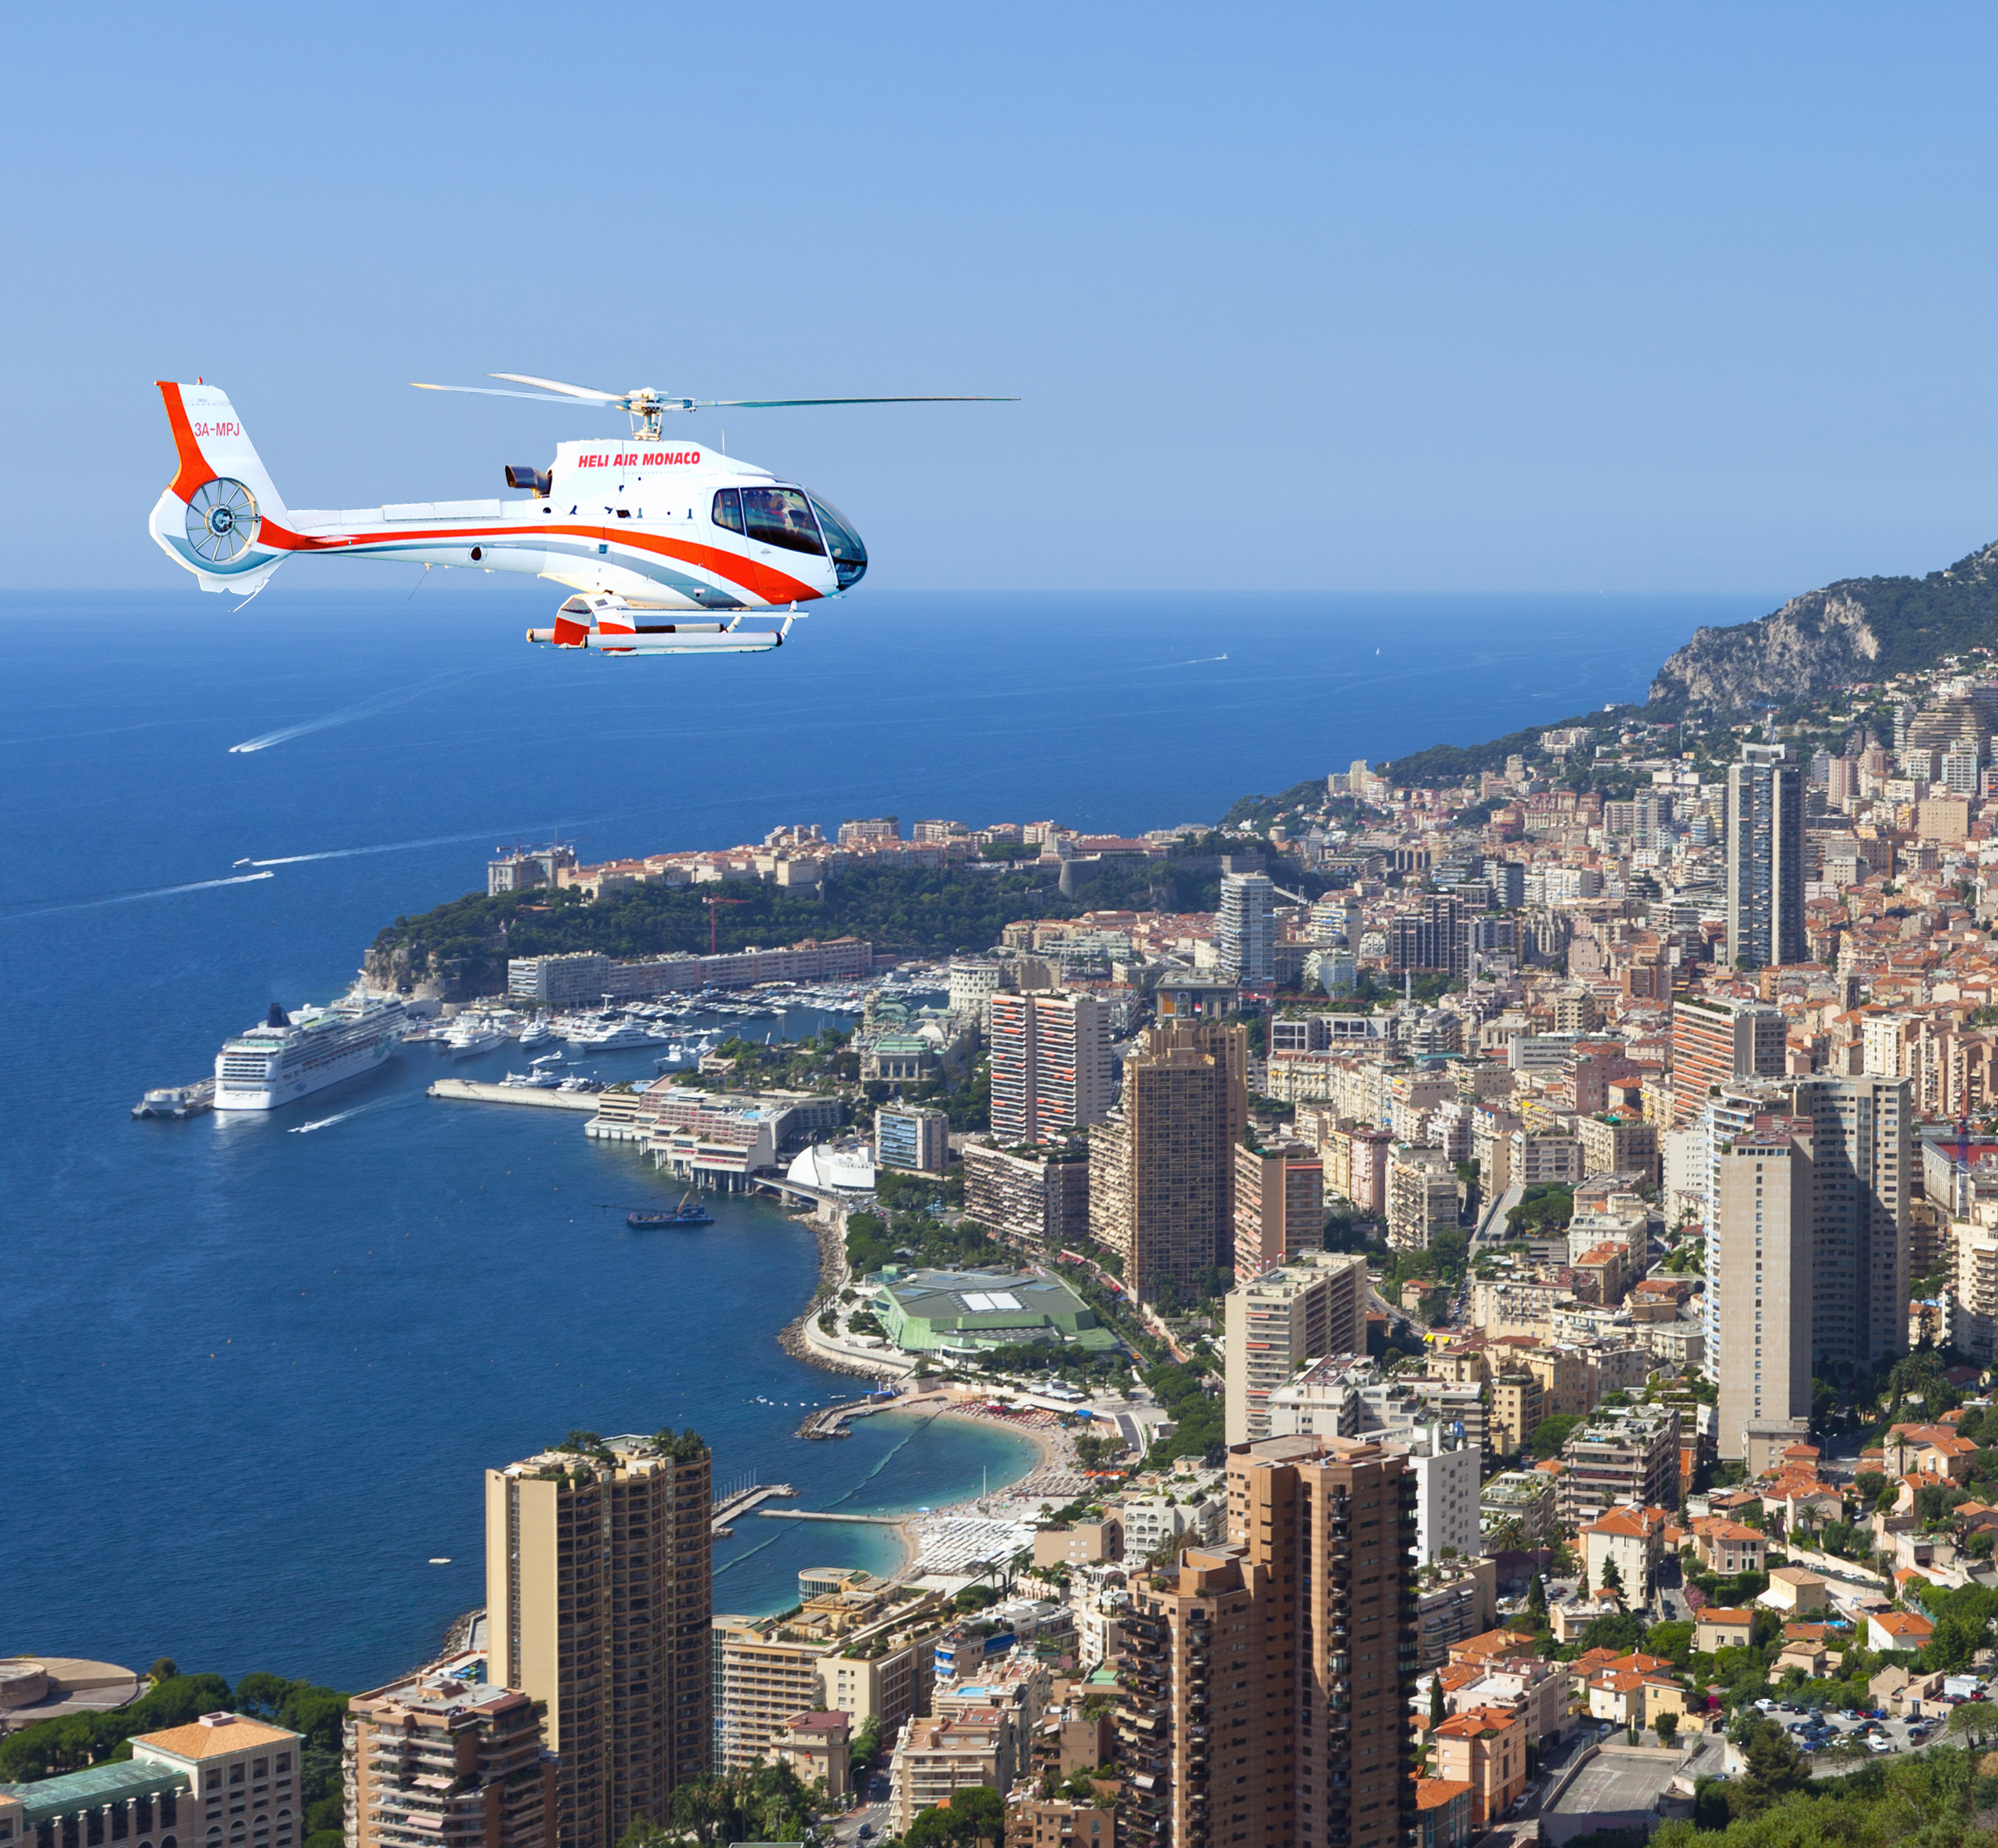 Helicopter tour at 45€ per person Heli Air Monaco